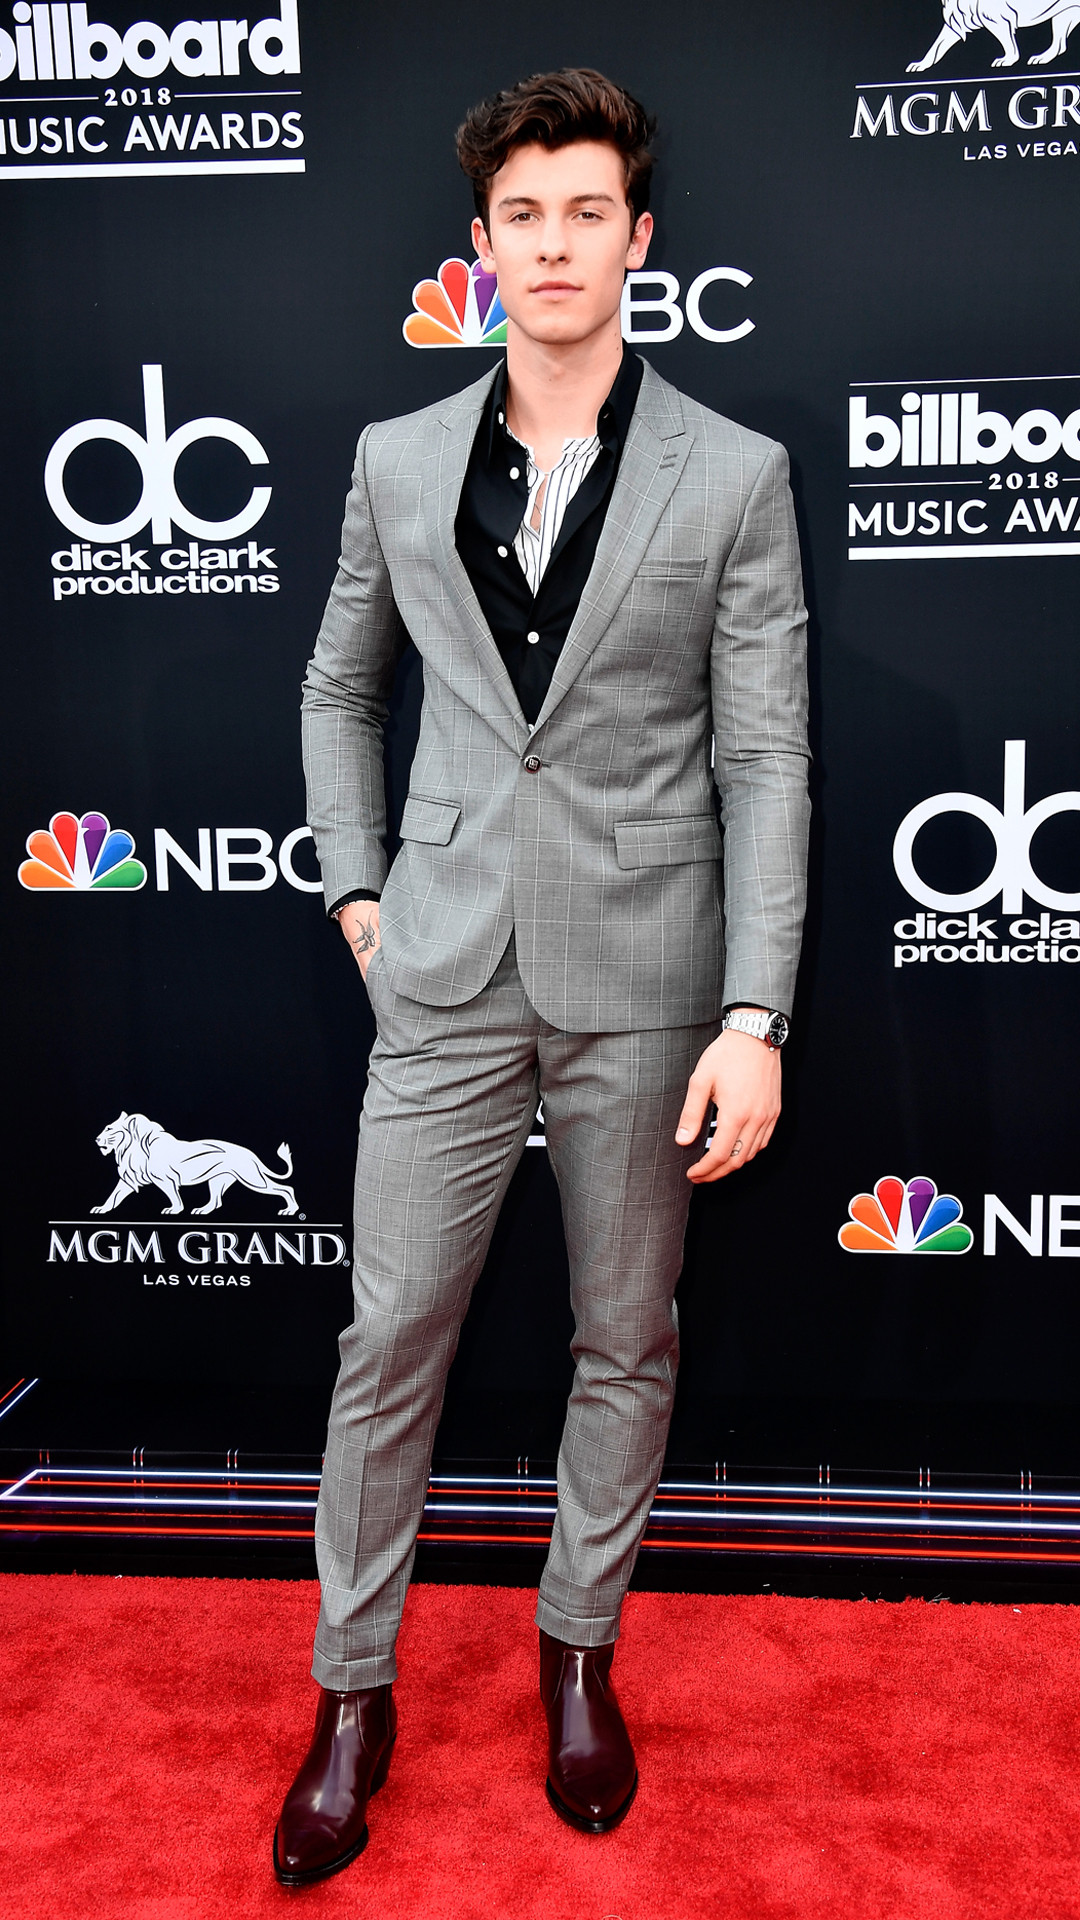 Shawn Mendes, 20 May 2018, 2018 Billboard Music Awards, Arrivals